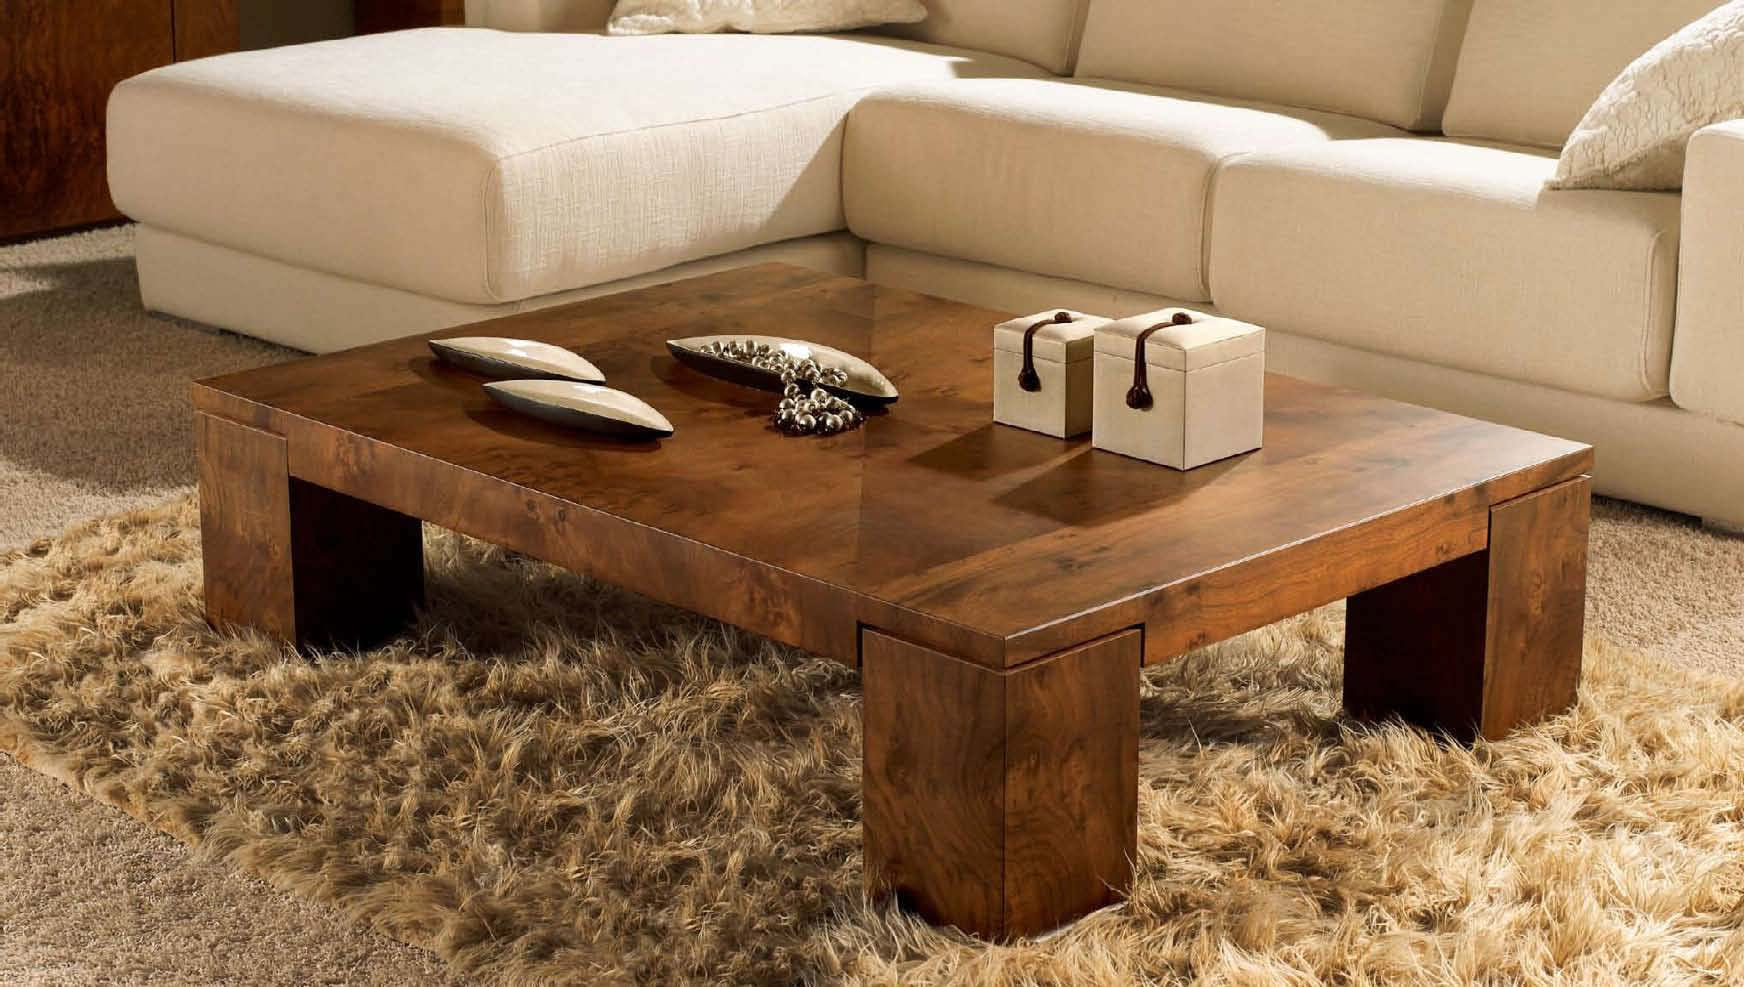 Fresh Cut Side Tables In Popular 22 Coffee Table Woodworking Projects Worth Trying – Cut The Wood (View 7 of 20)